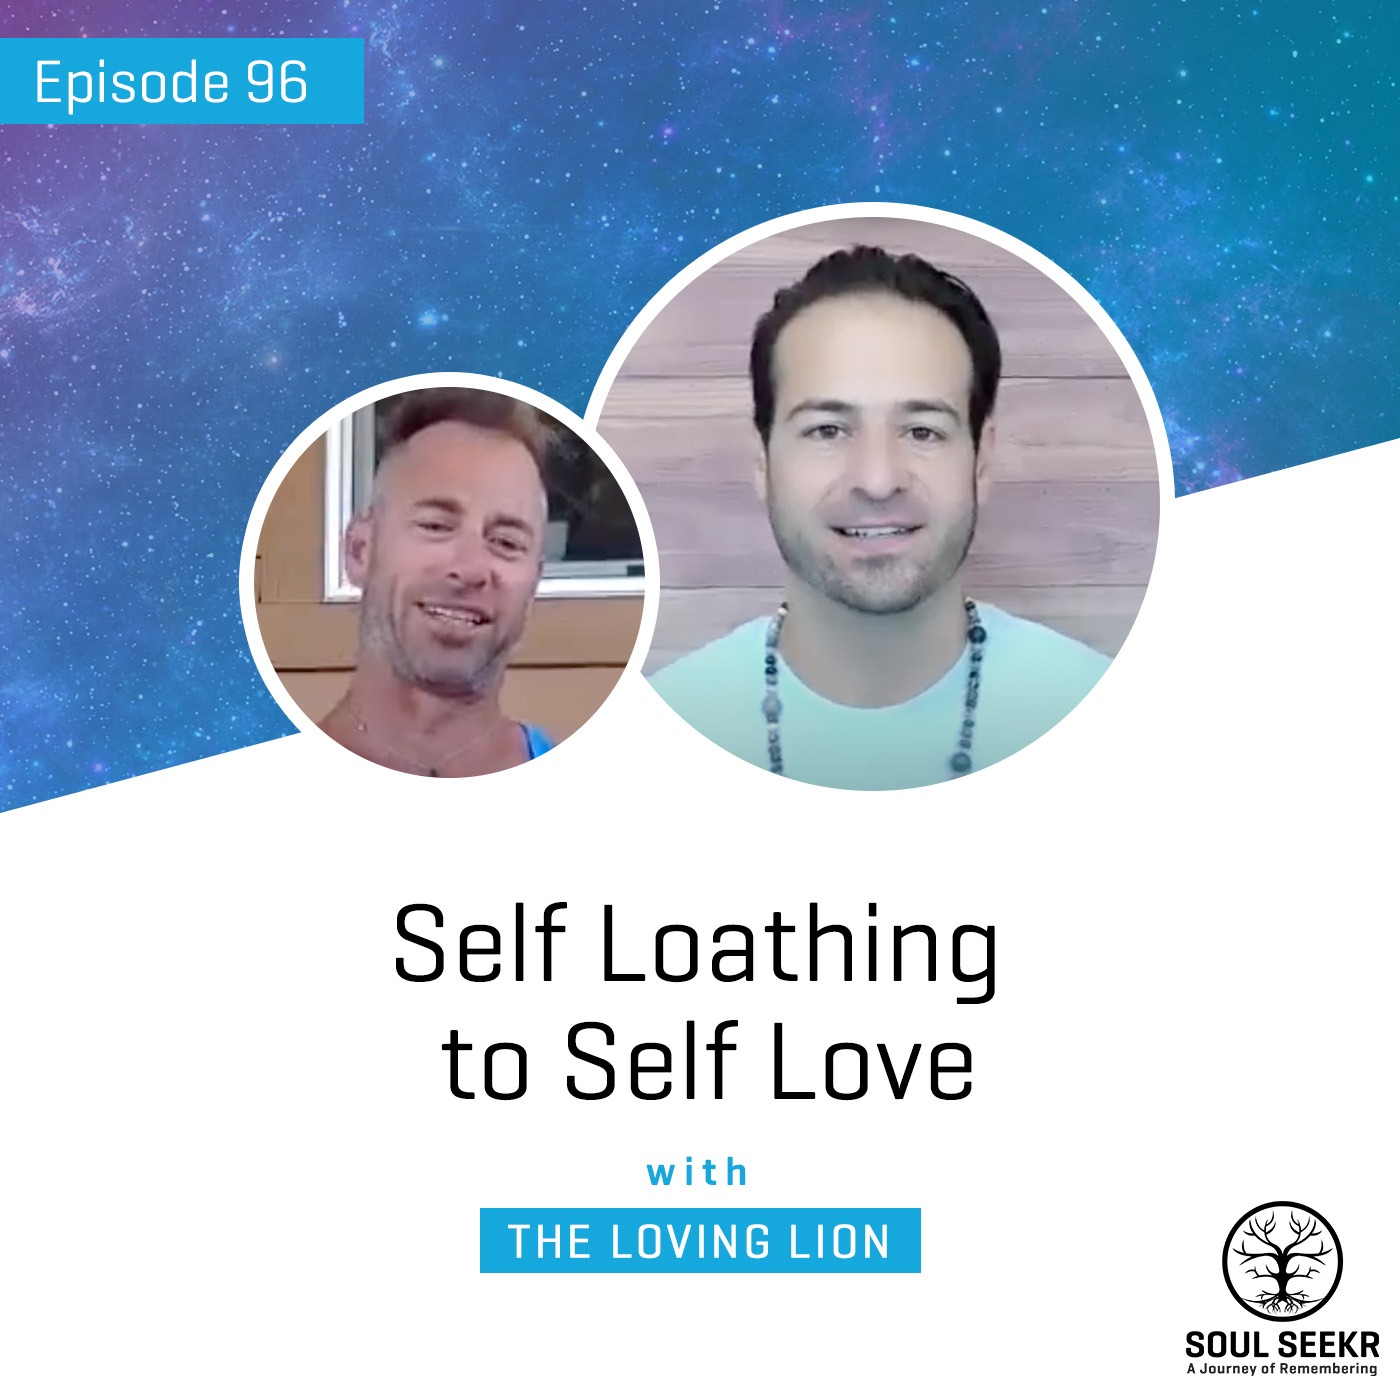 #96: Self Loathing to Self Love with The Loving Lion